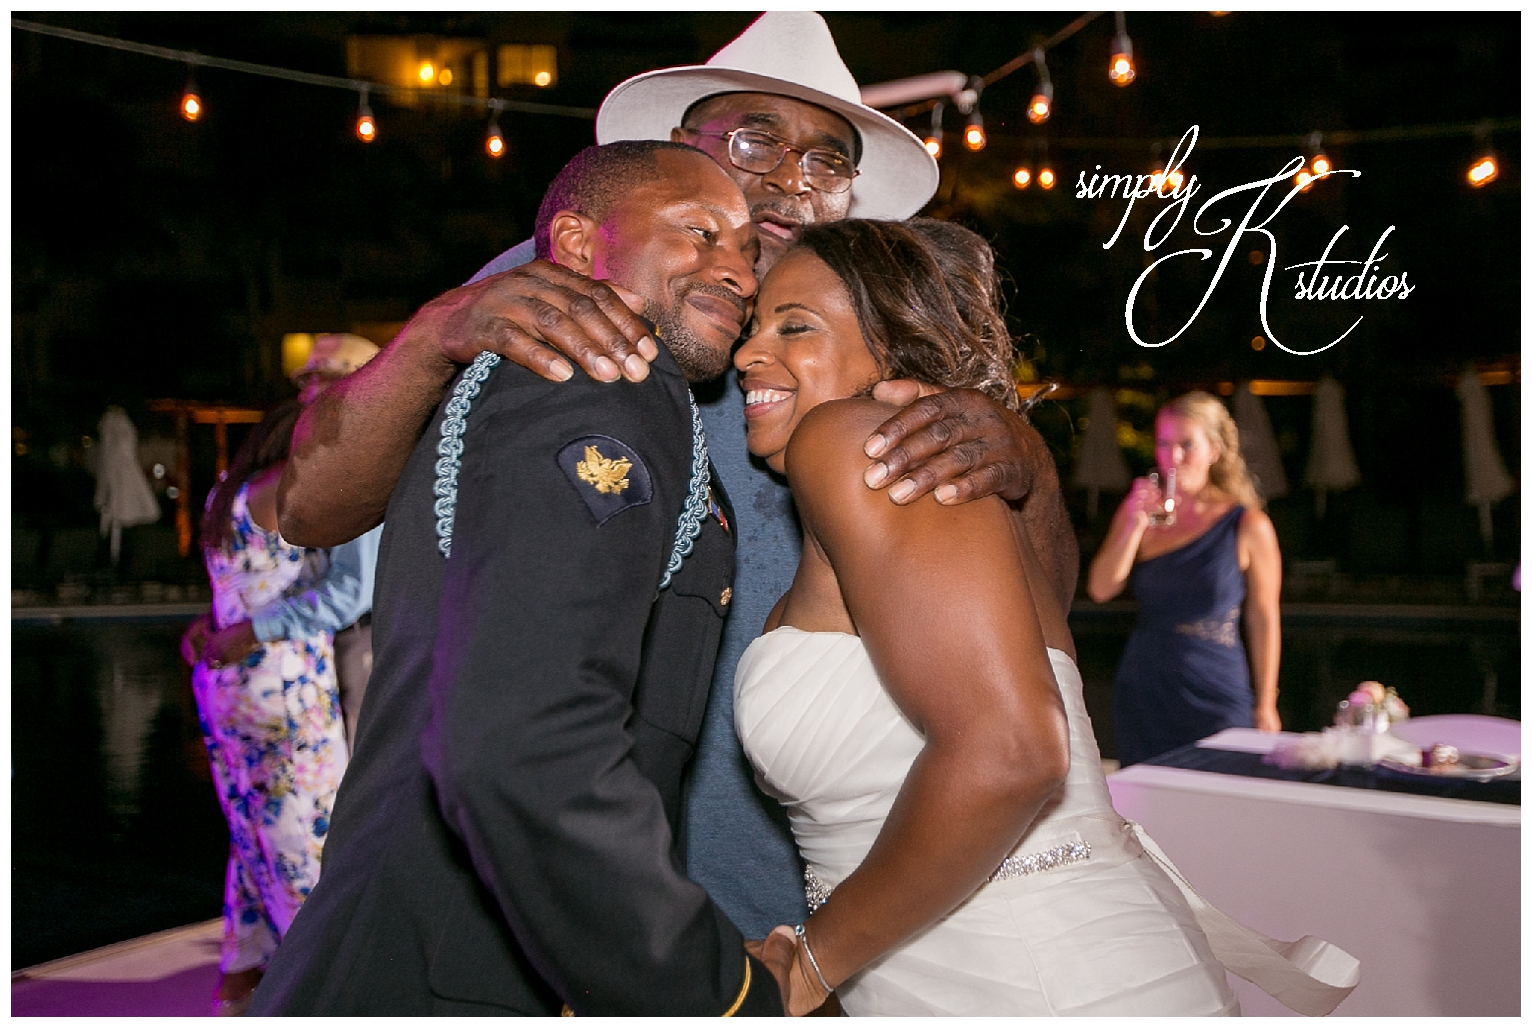 Wedding Photos by Simply K Studios.jpg